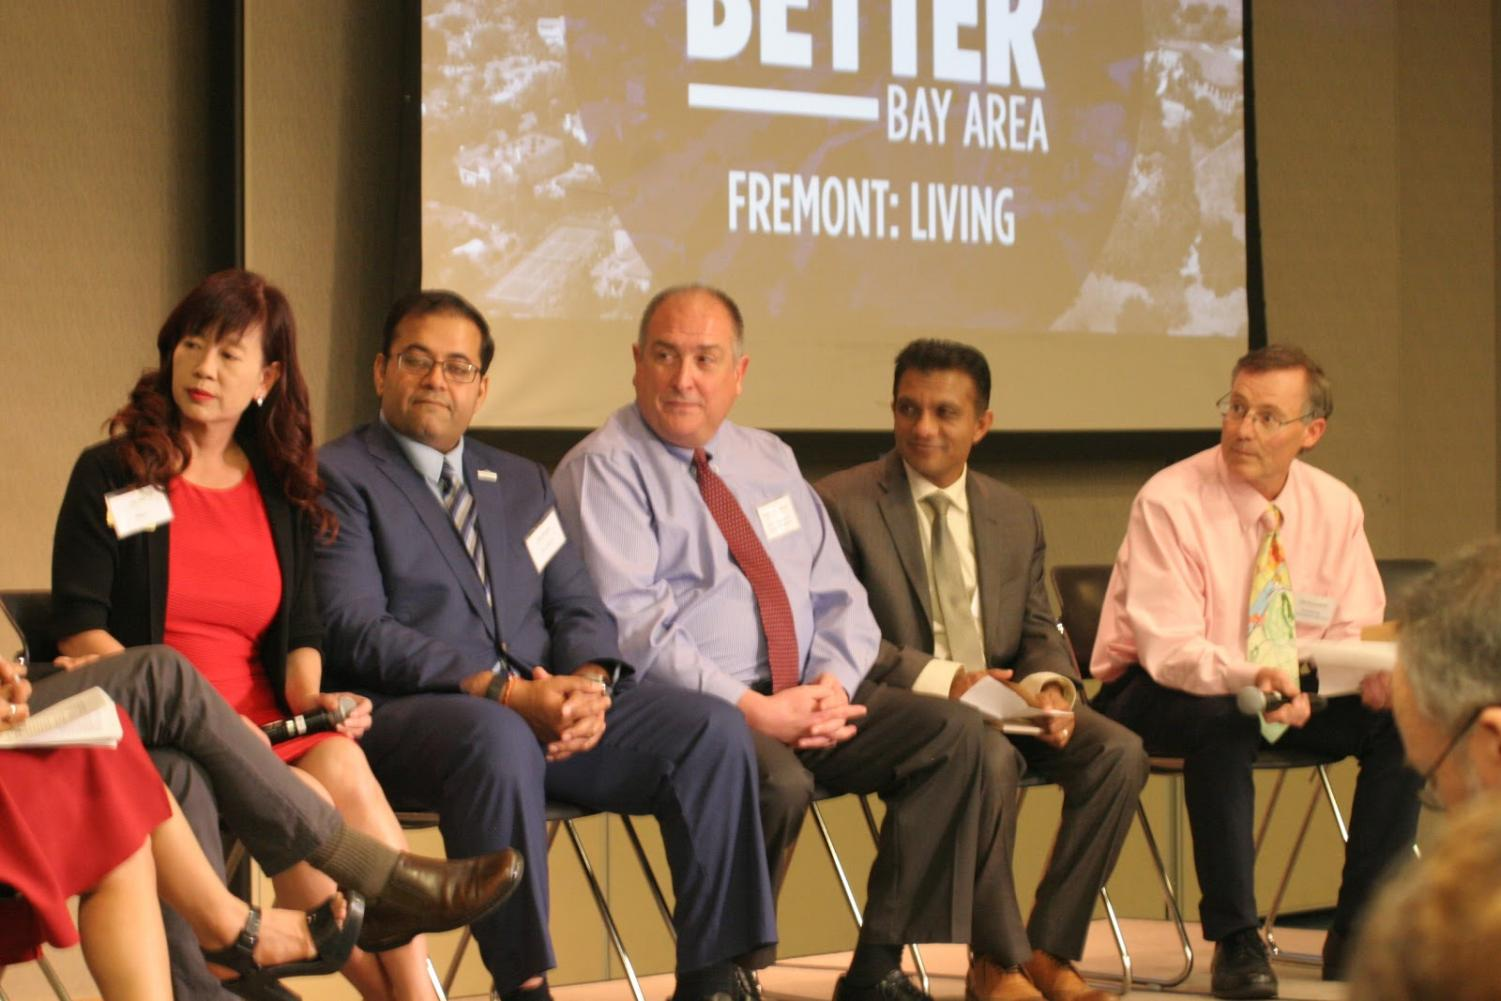 Fremont Town Hall: Building A Better Bay Area